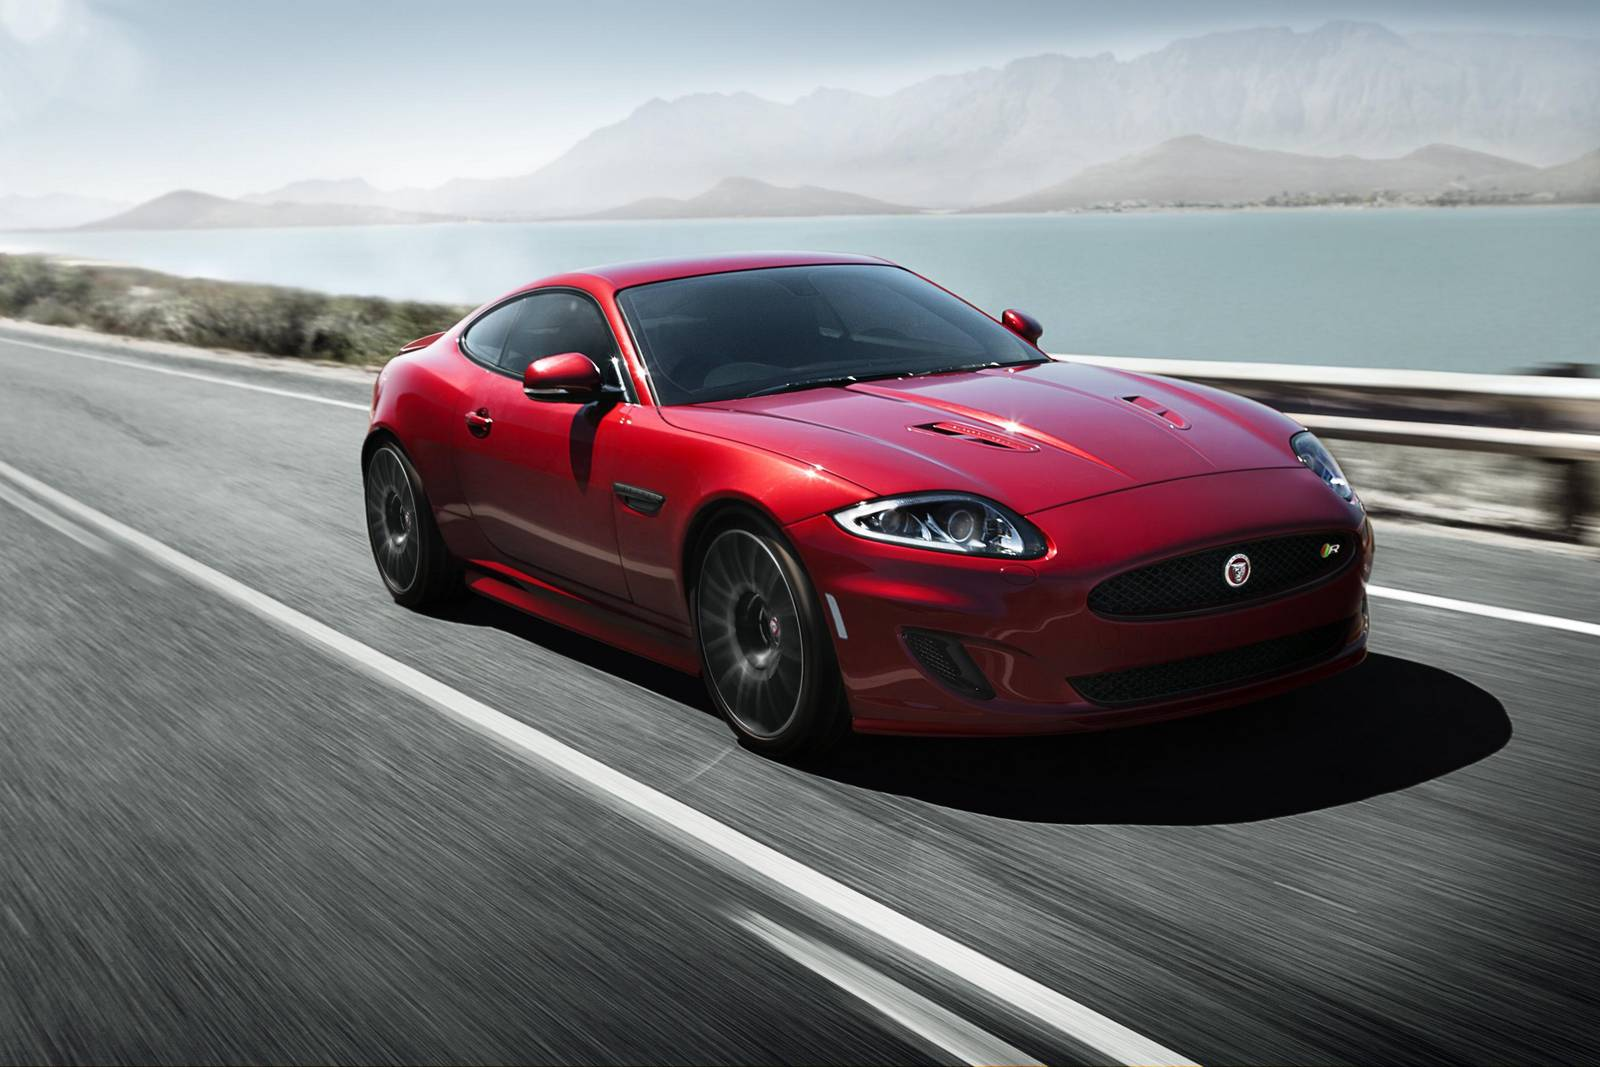 Jaguar Xk Replacement 2017 >> Larger Jaguar XK Replacement Coming for 2017 - GTspirit